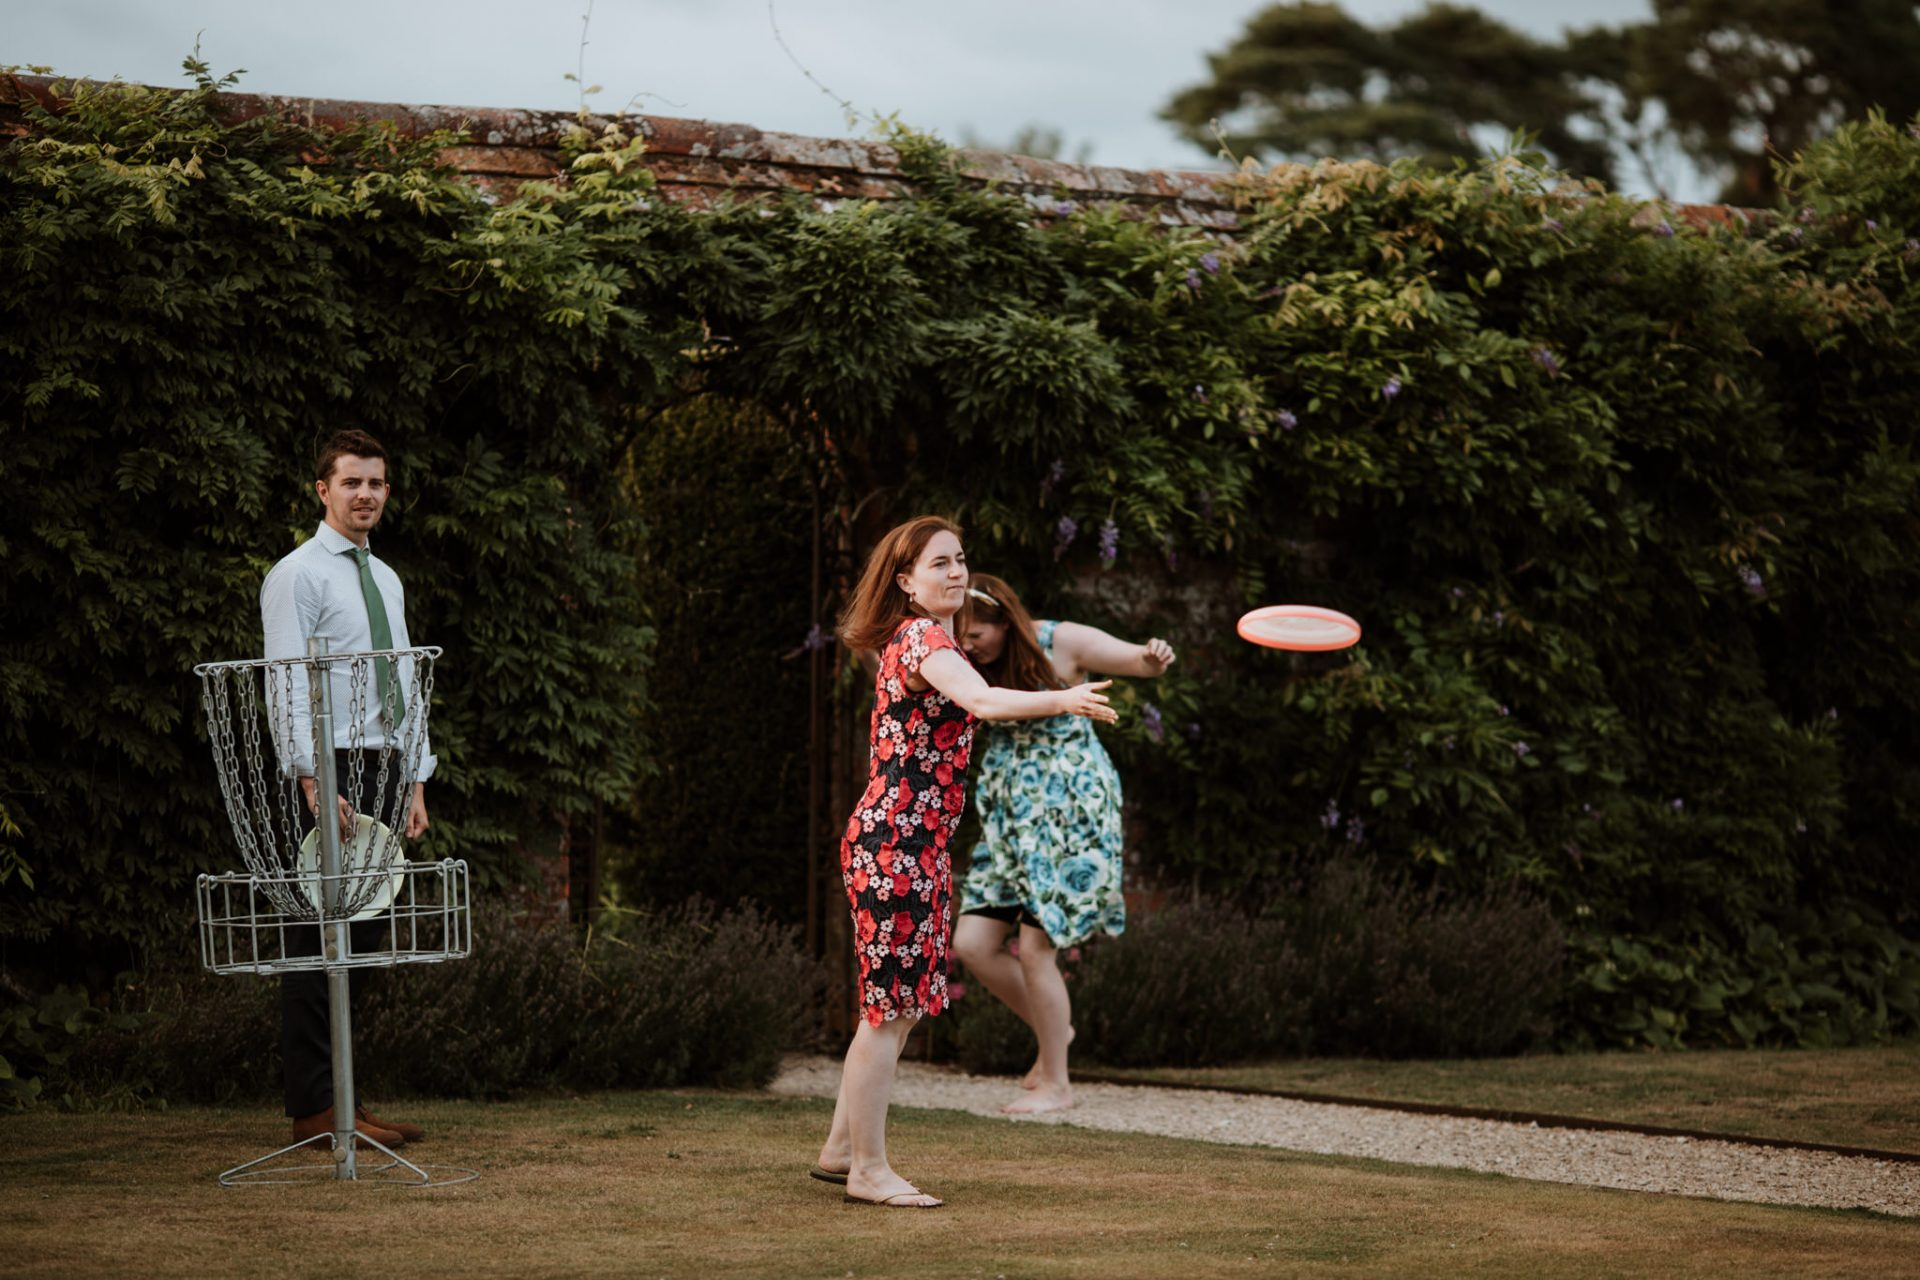 wedding guest playing frisbee